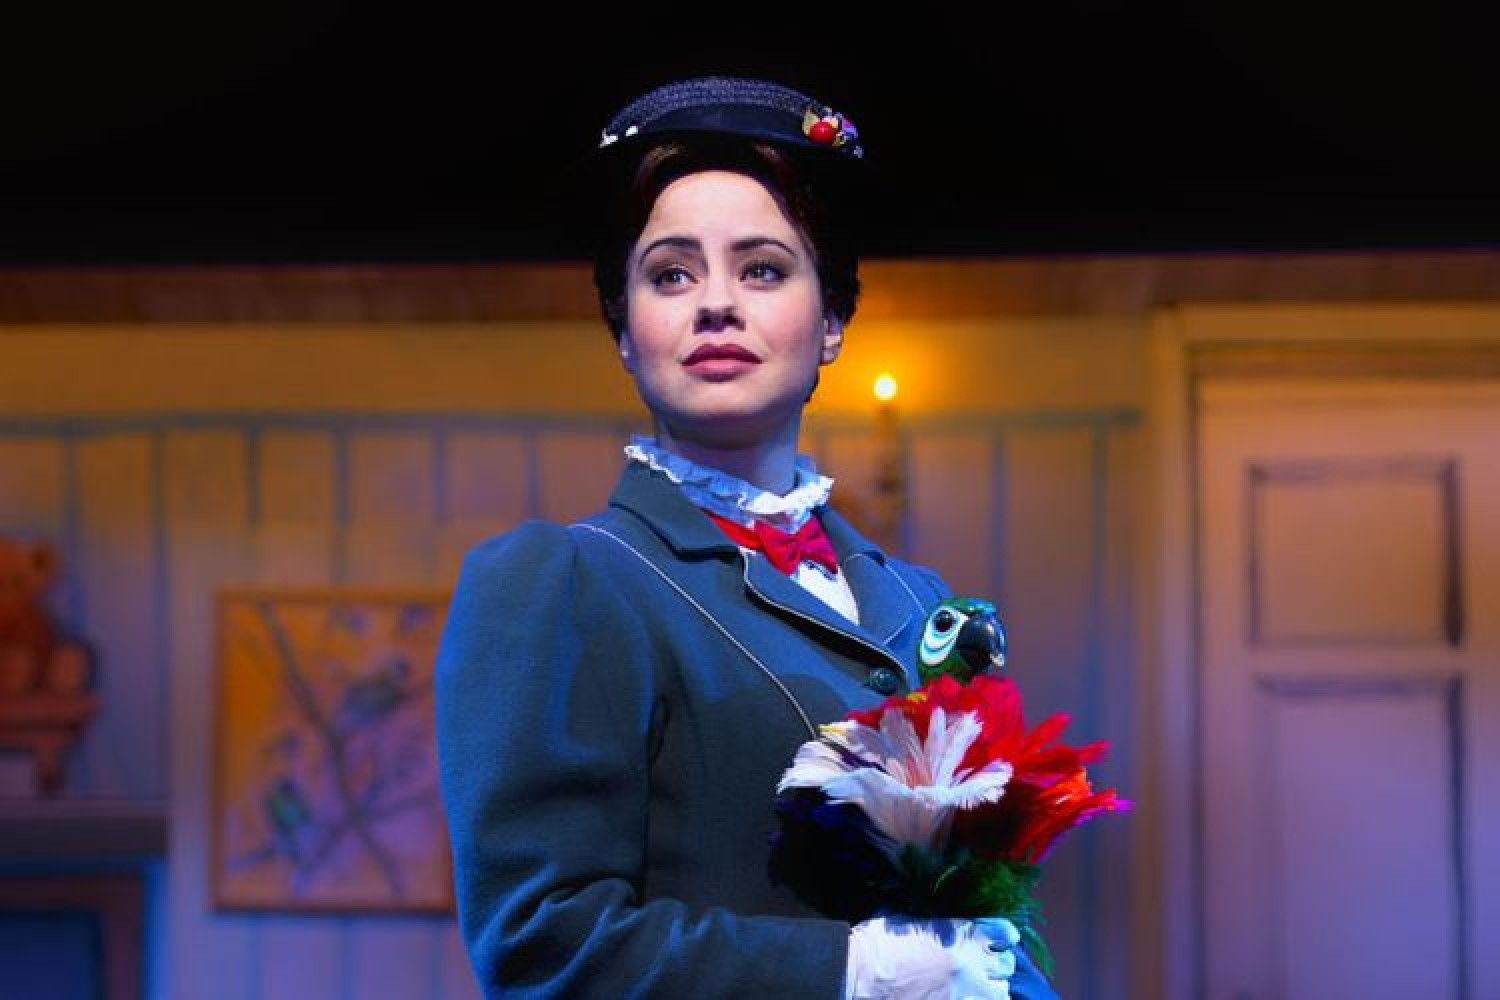 Mary Poppins il Musical: in scena finalmente a Roma